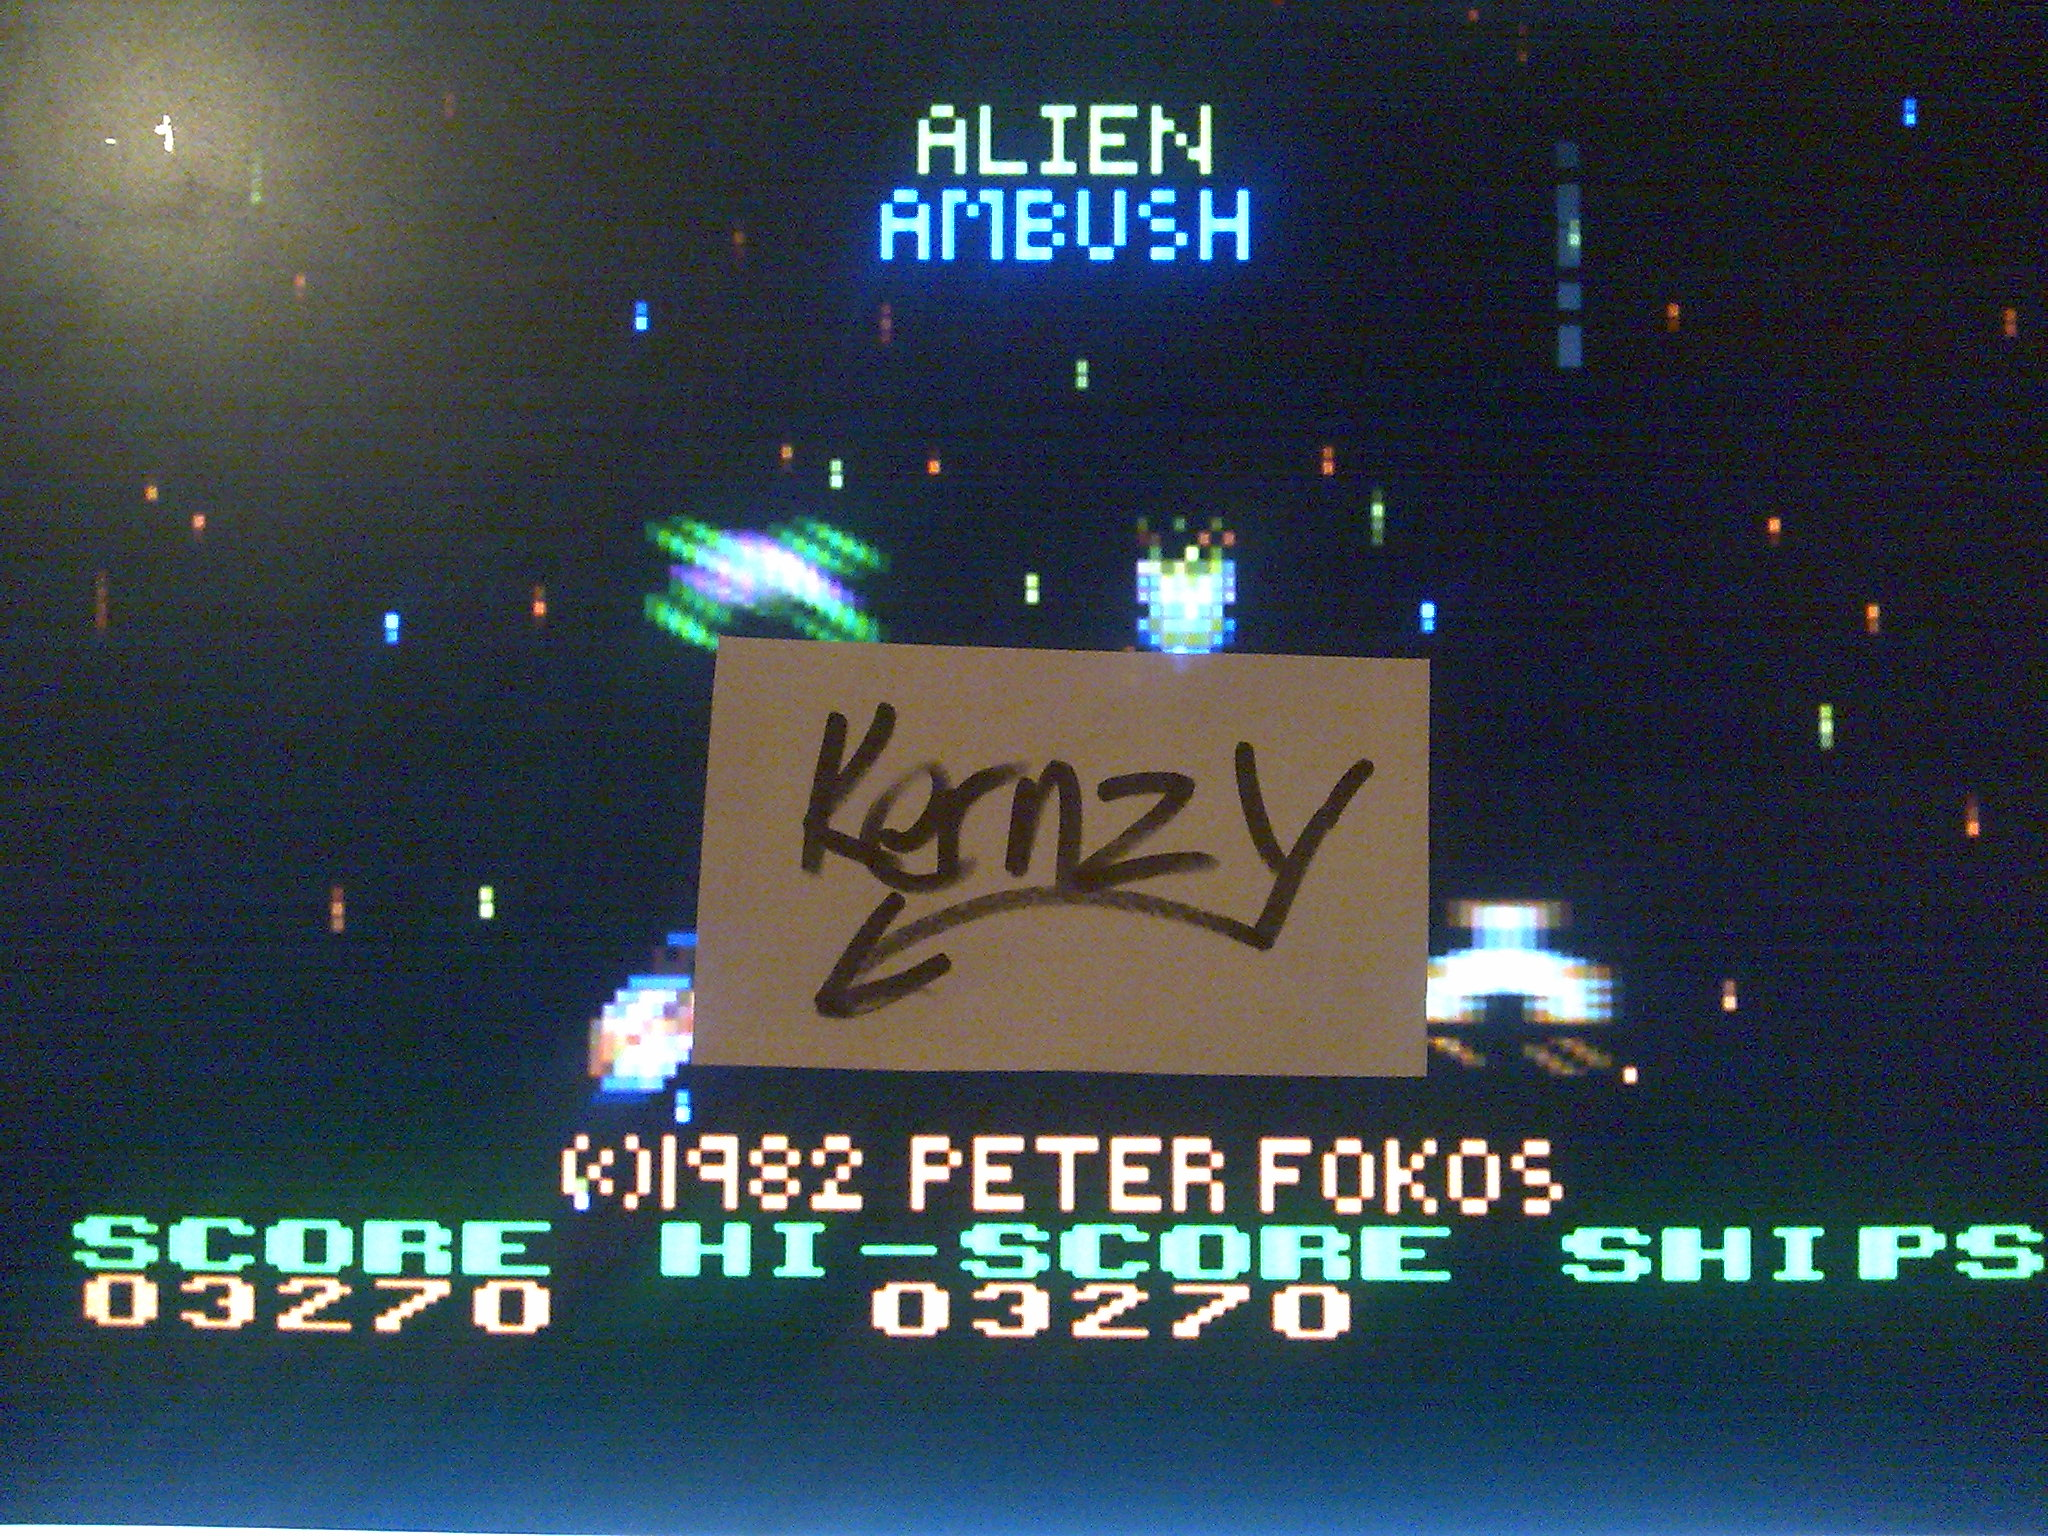 kernzy: Alien Ambush (Atari 400/800/XL/XE Emulated) 3,270 points on 2014-11-12 06:18:24